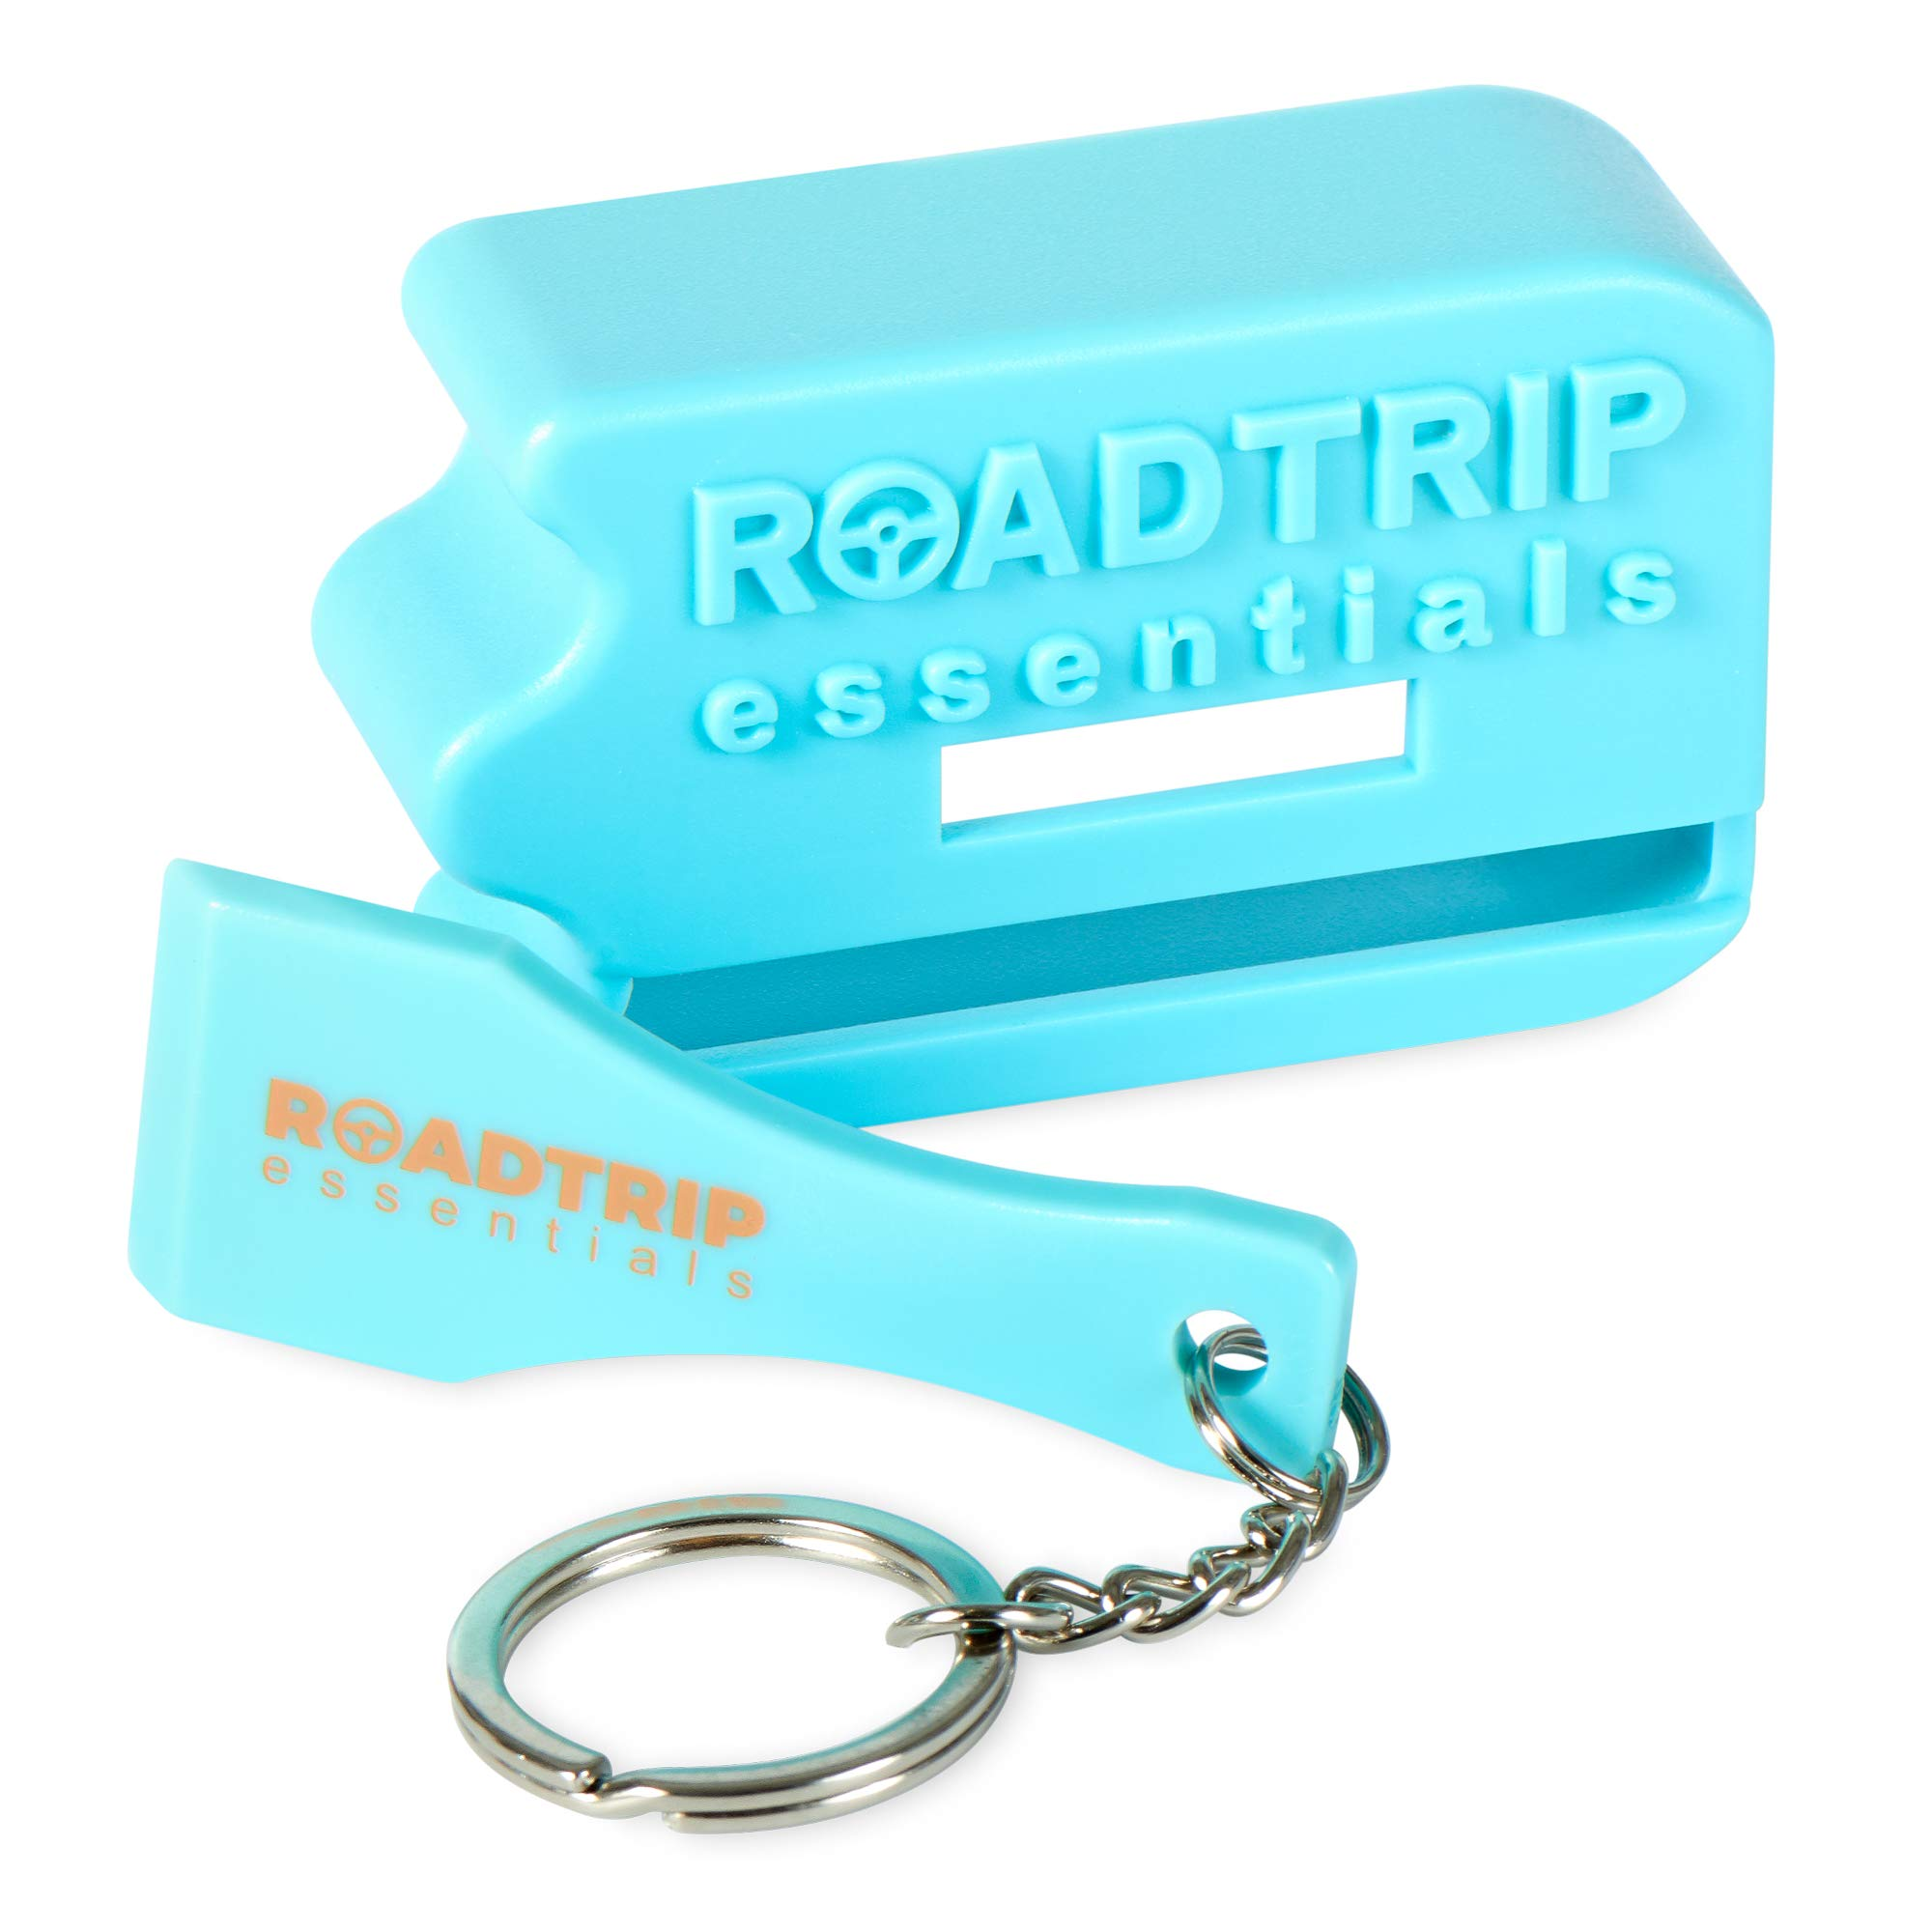 Premium Seat Belt Buckle Guard Lock & Release Key   Protect Children from Removing Their Seatbelt, Clips in & Locks to Prevent Unbuckling During Auto Journeys   Learning Difficulties Safety Equipment